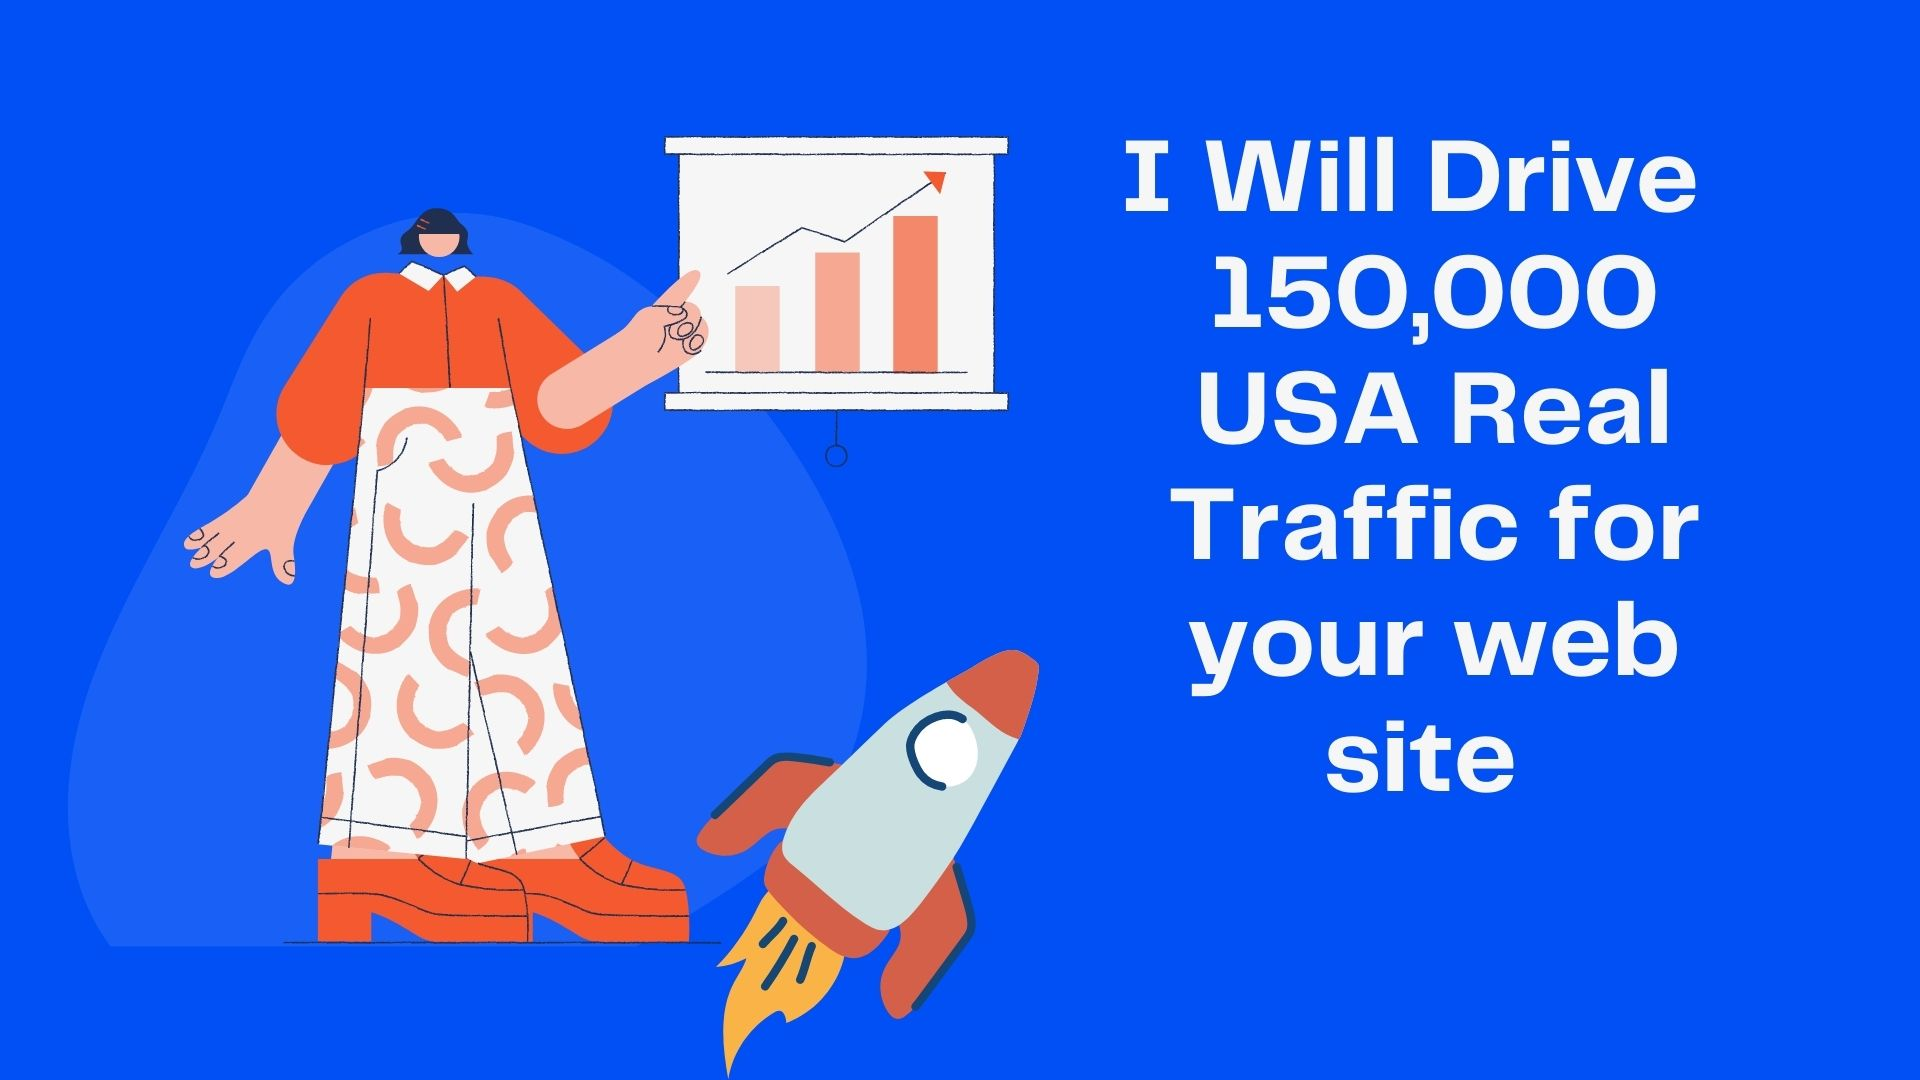 I Will Drive 150,000 USA Real Traffic for your web site